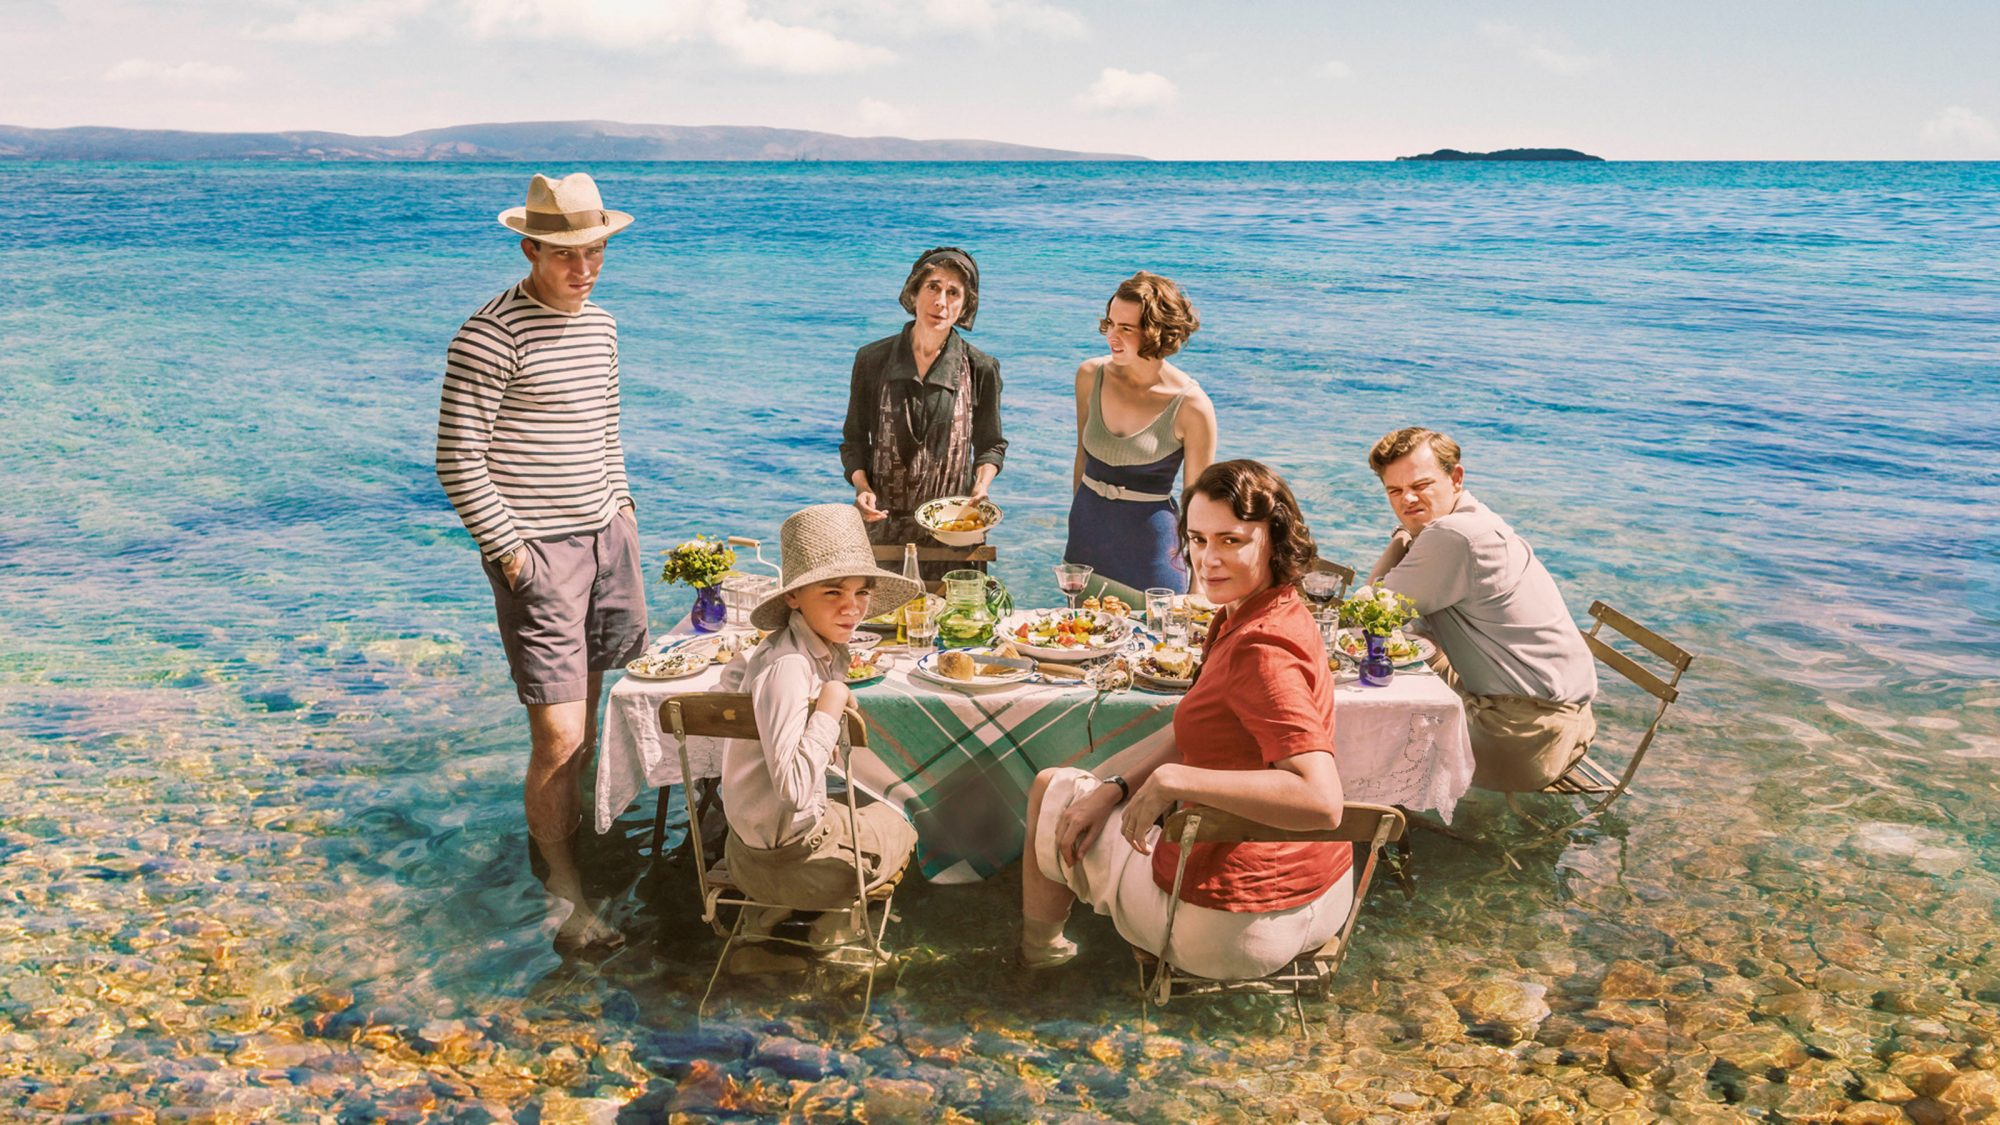 This PBS Series Will Transport You to a Sun-Drenched Greek Island